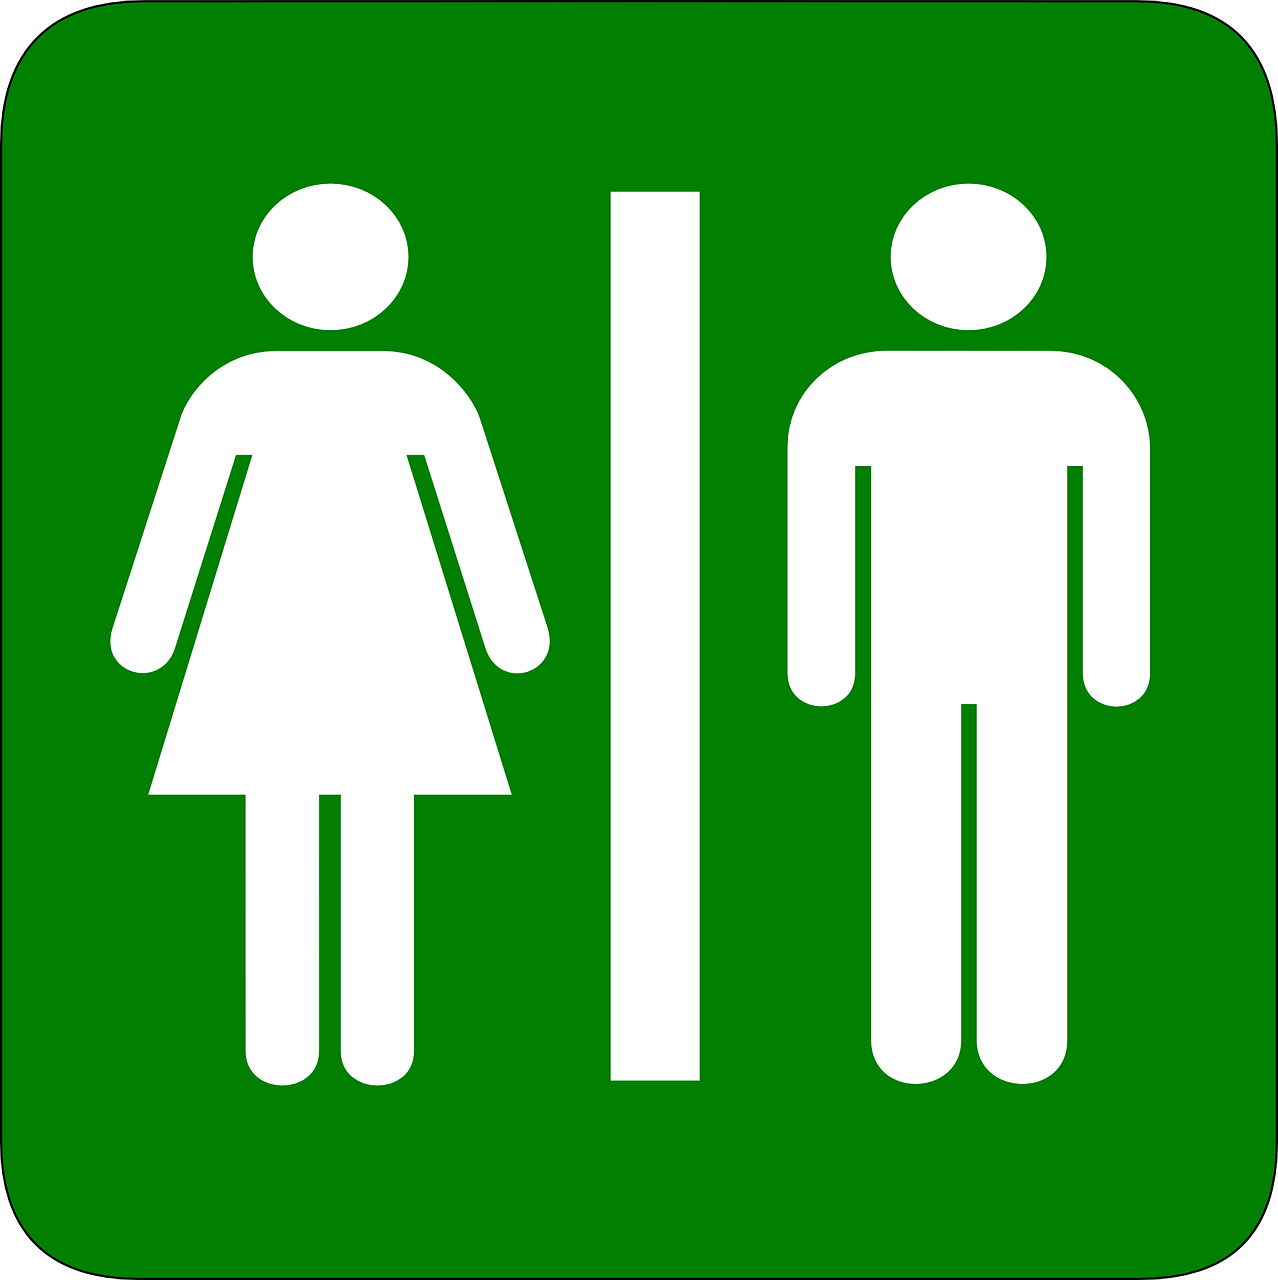 Majority of young people oppose transgender restroom restrictions